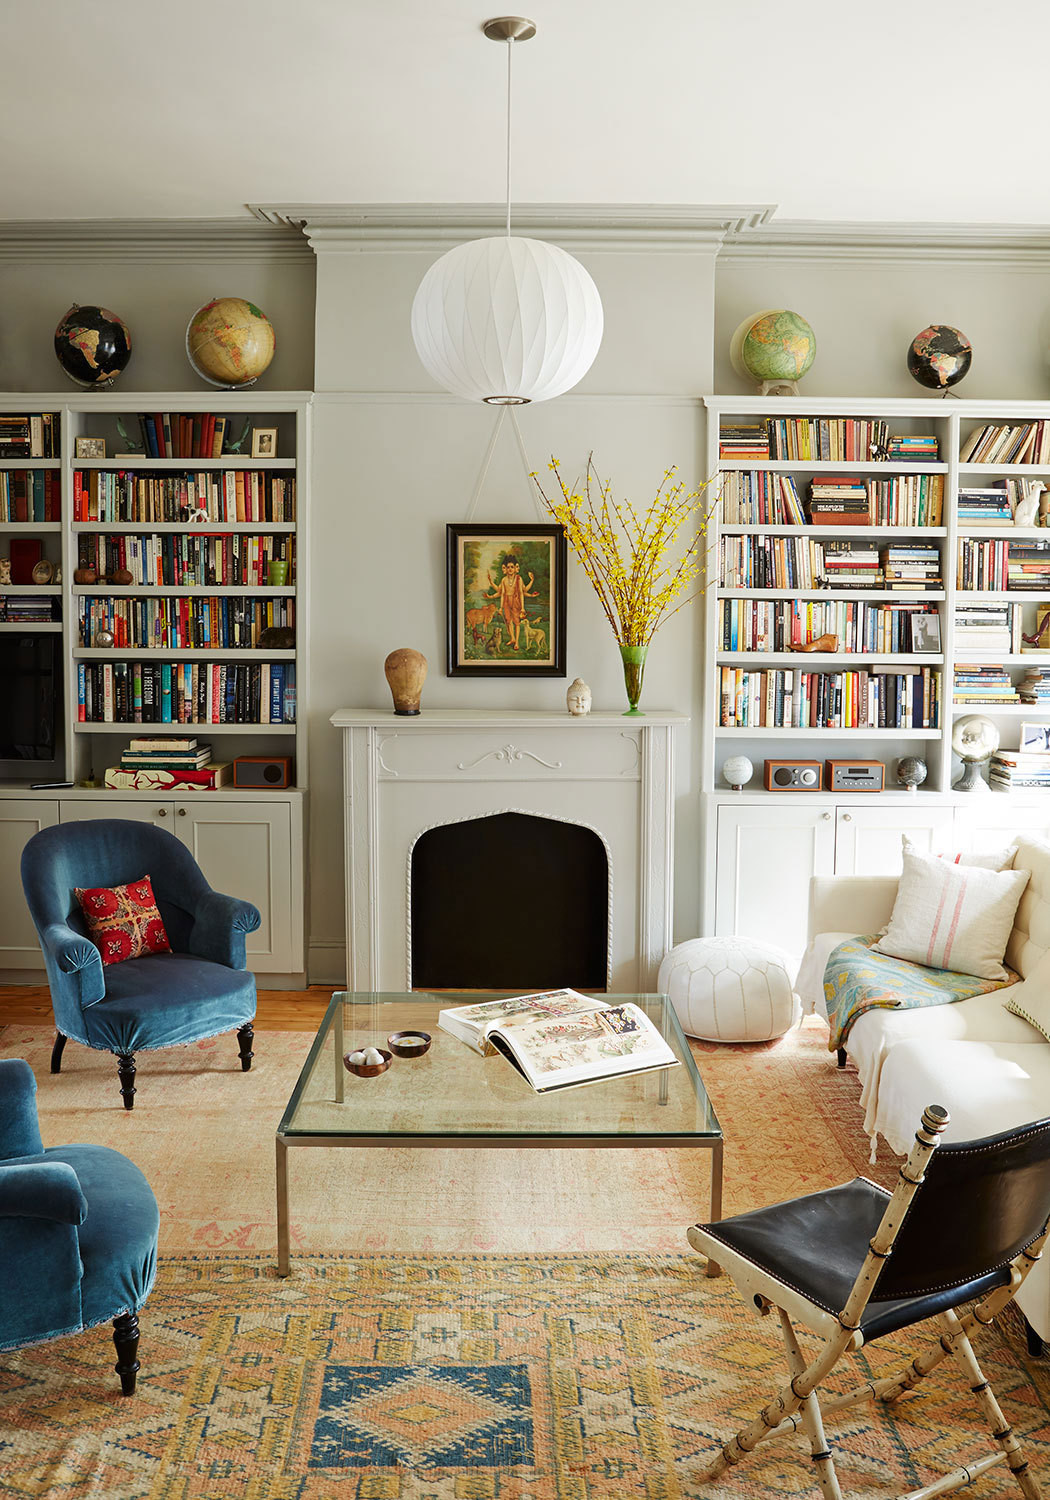 Get The Look An Eclectic Living Room Decorating Lonny: modern eclectic living room